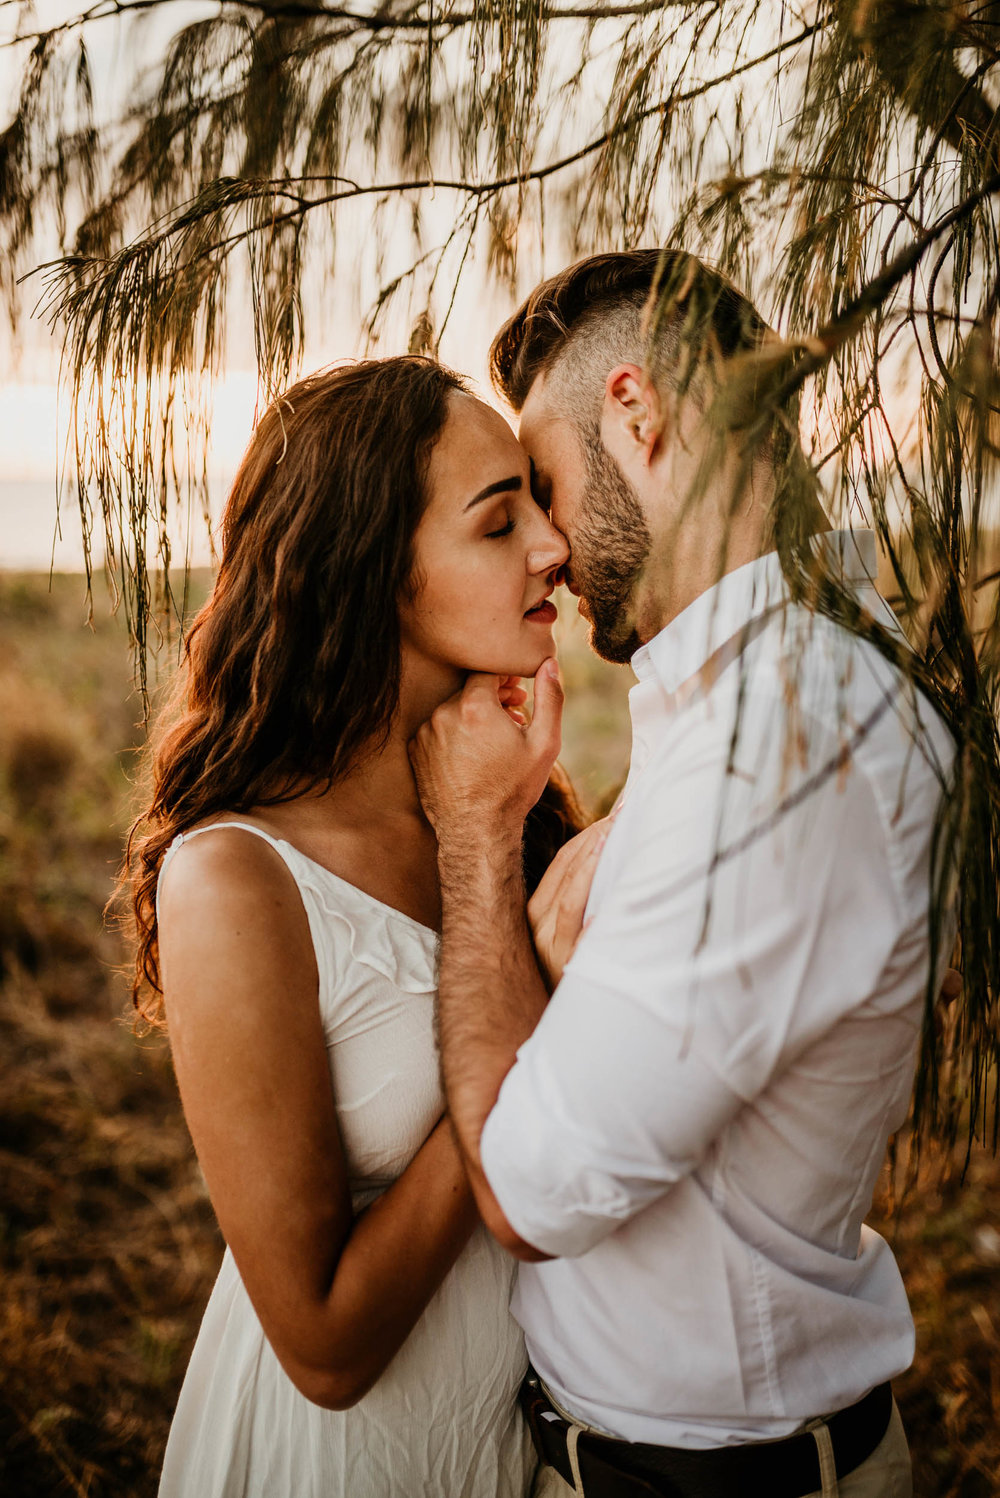 The Raw Photographer - Cairns Wedding Photographer - Engaged Engagement - Beach location - Candid Photography Queensland-21.jpg